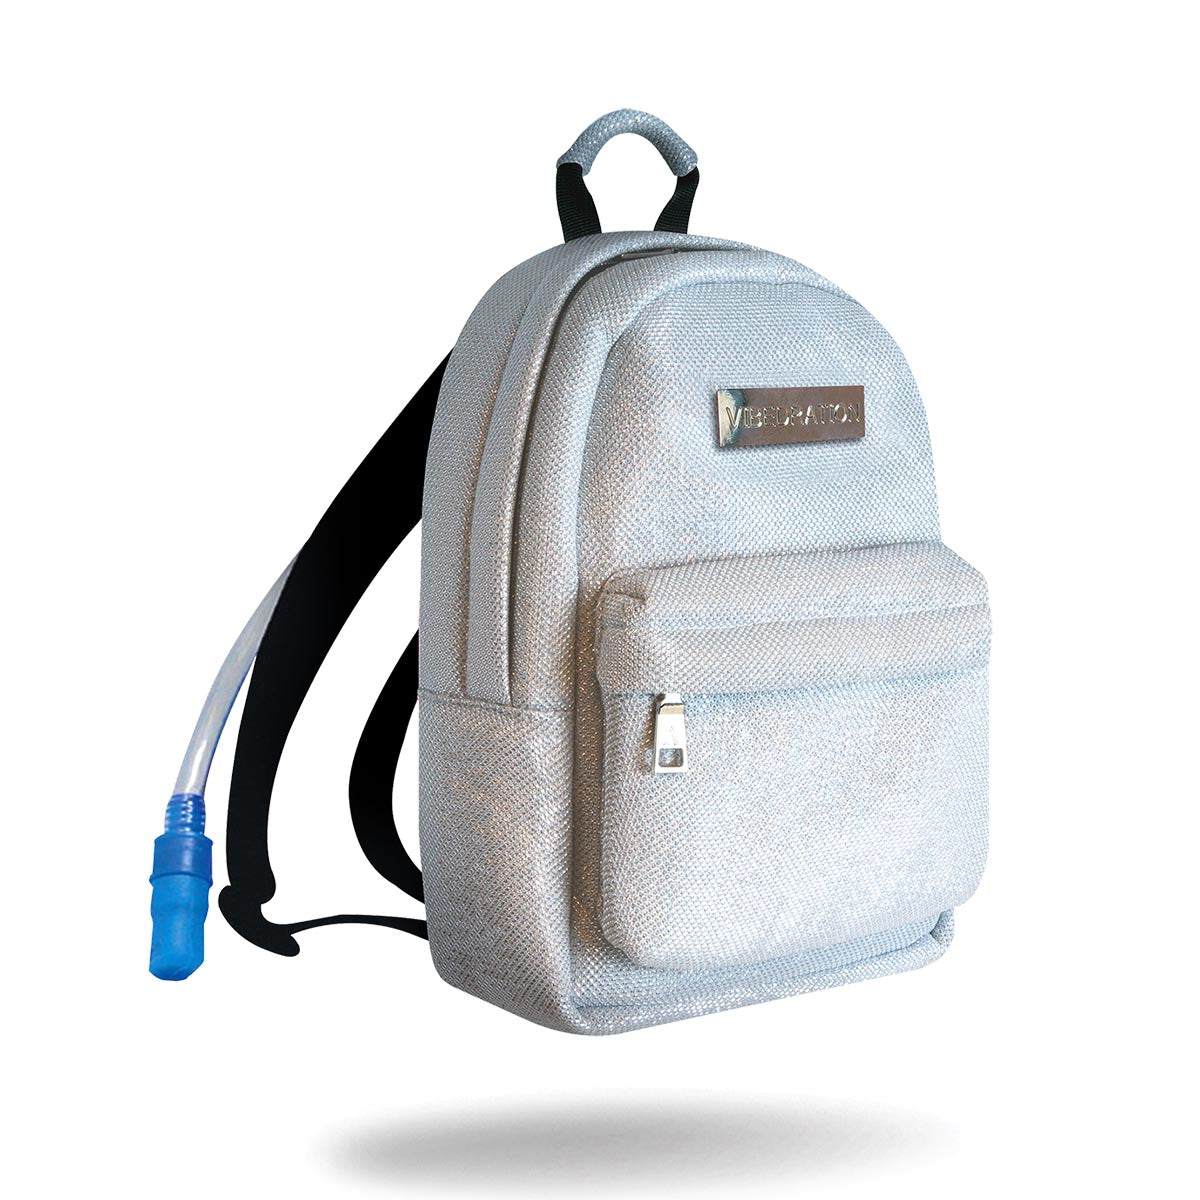 Silver hydration pack with one liter water bladder